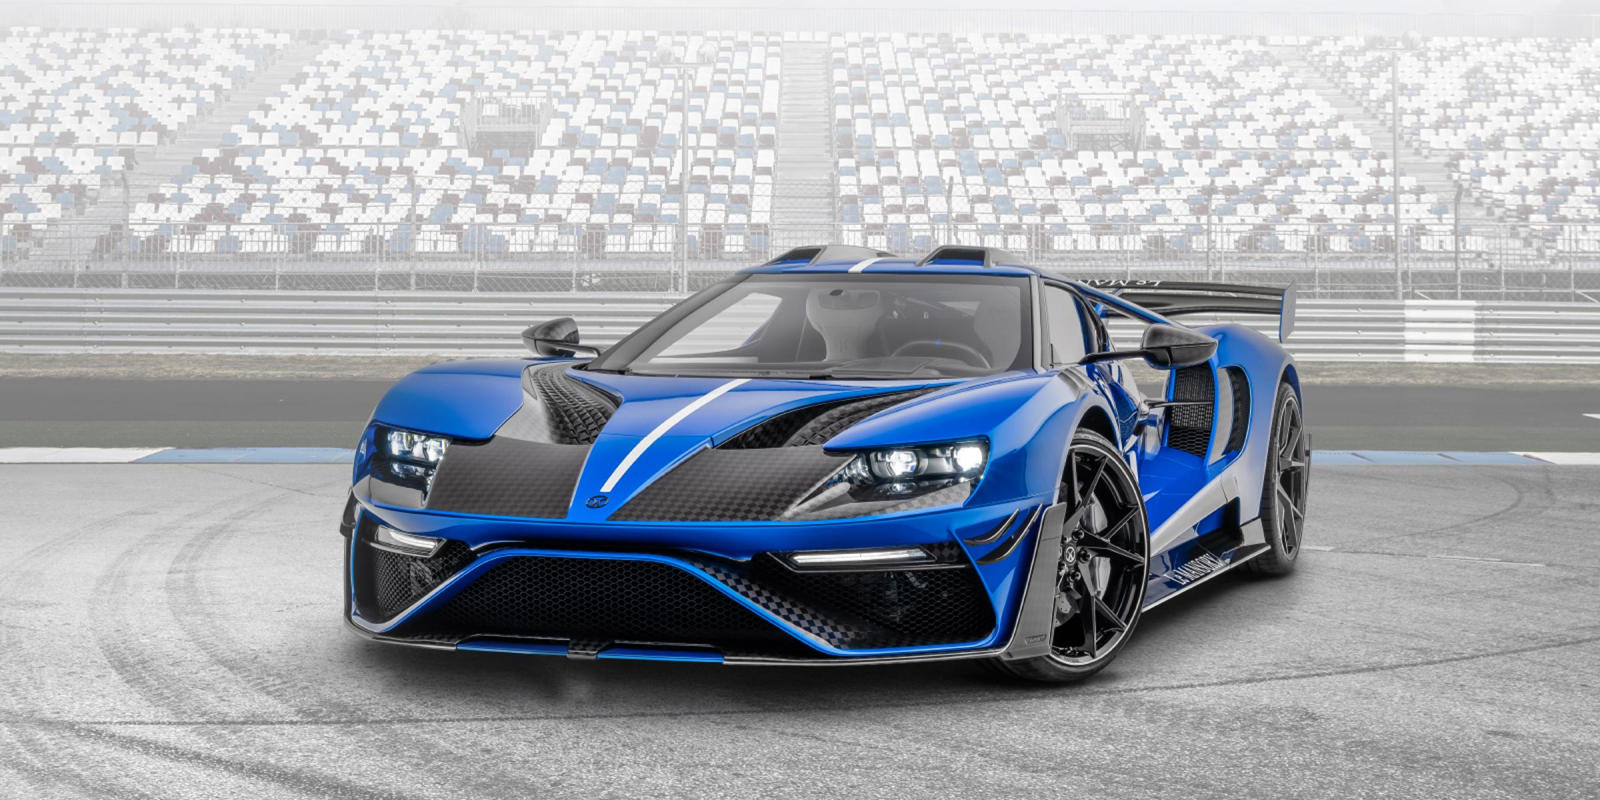 """Mansory has announced the production of three """"Le Mansory"""" Ford GTs with all-carbon bodies, boosted engines and tuned exhaust systems. The cars are very lightweight and trimmed to their owner's specification."""